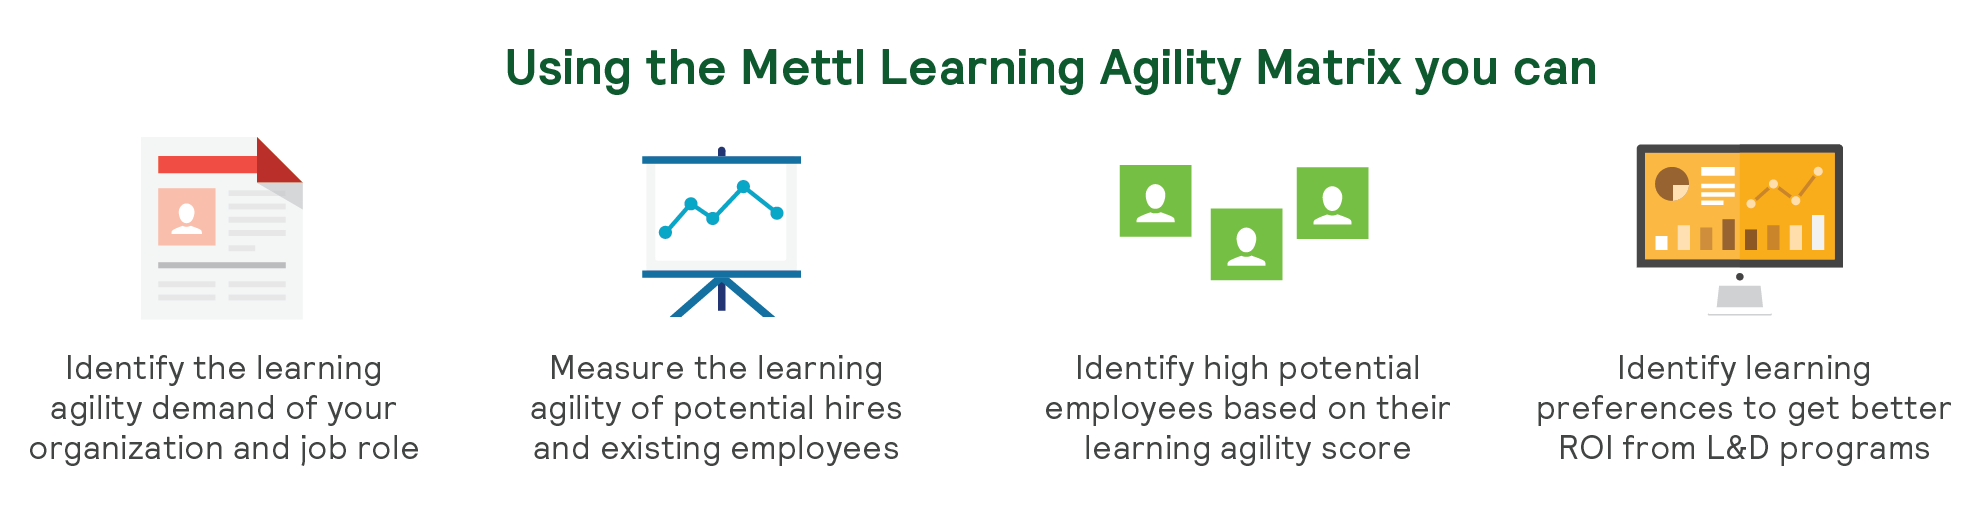 mettl_learning_agility_matrix_how_to_recruit_the_top_talent